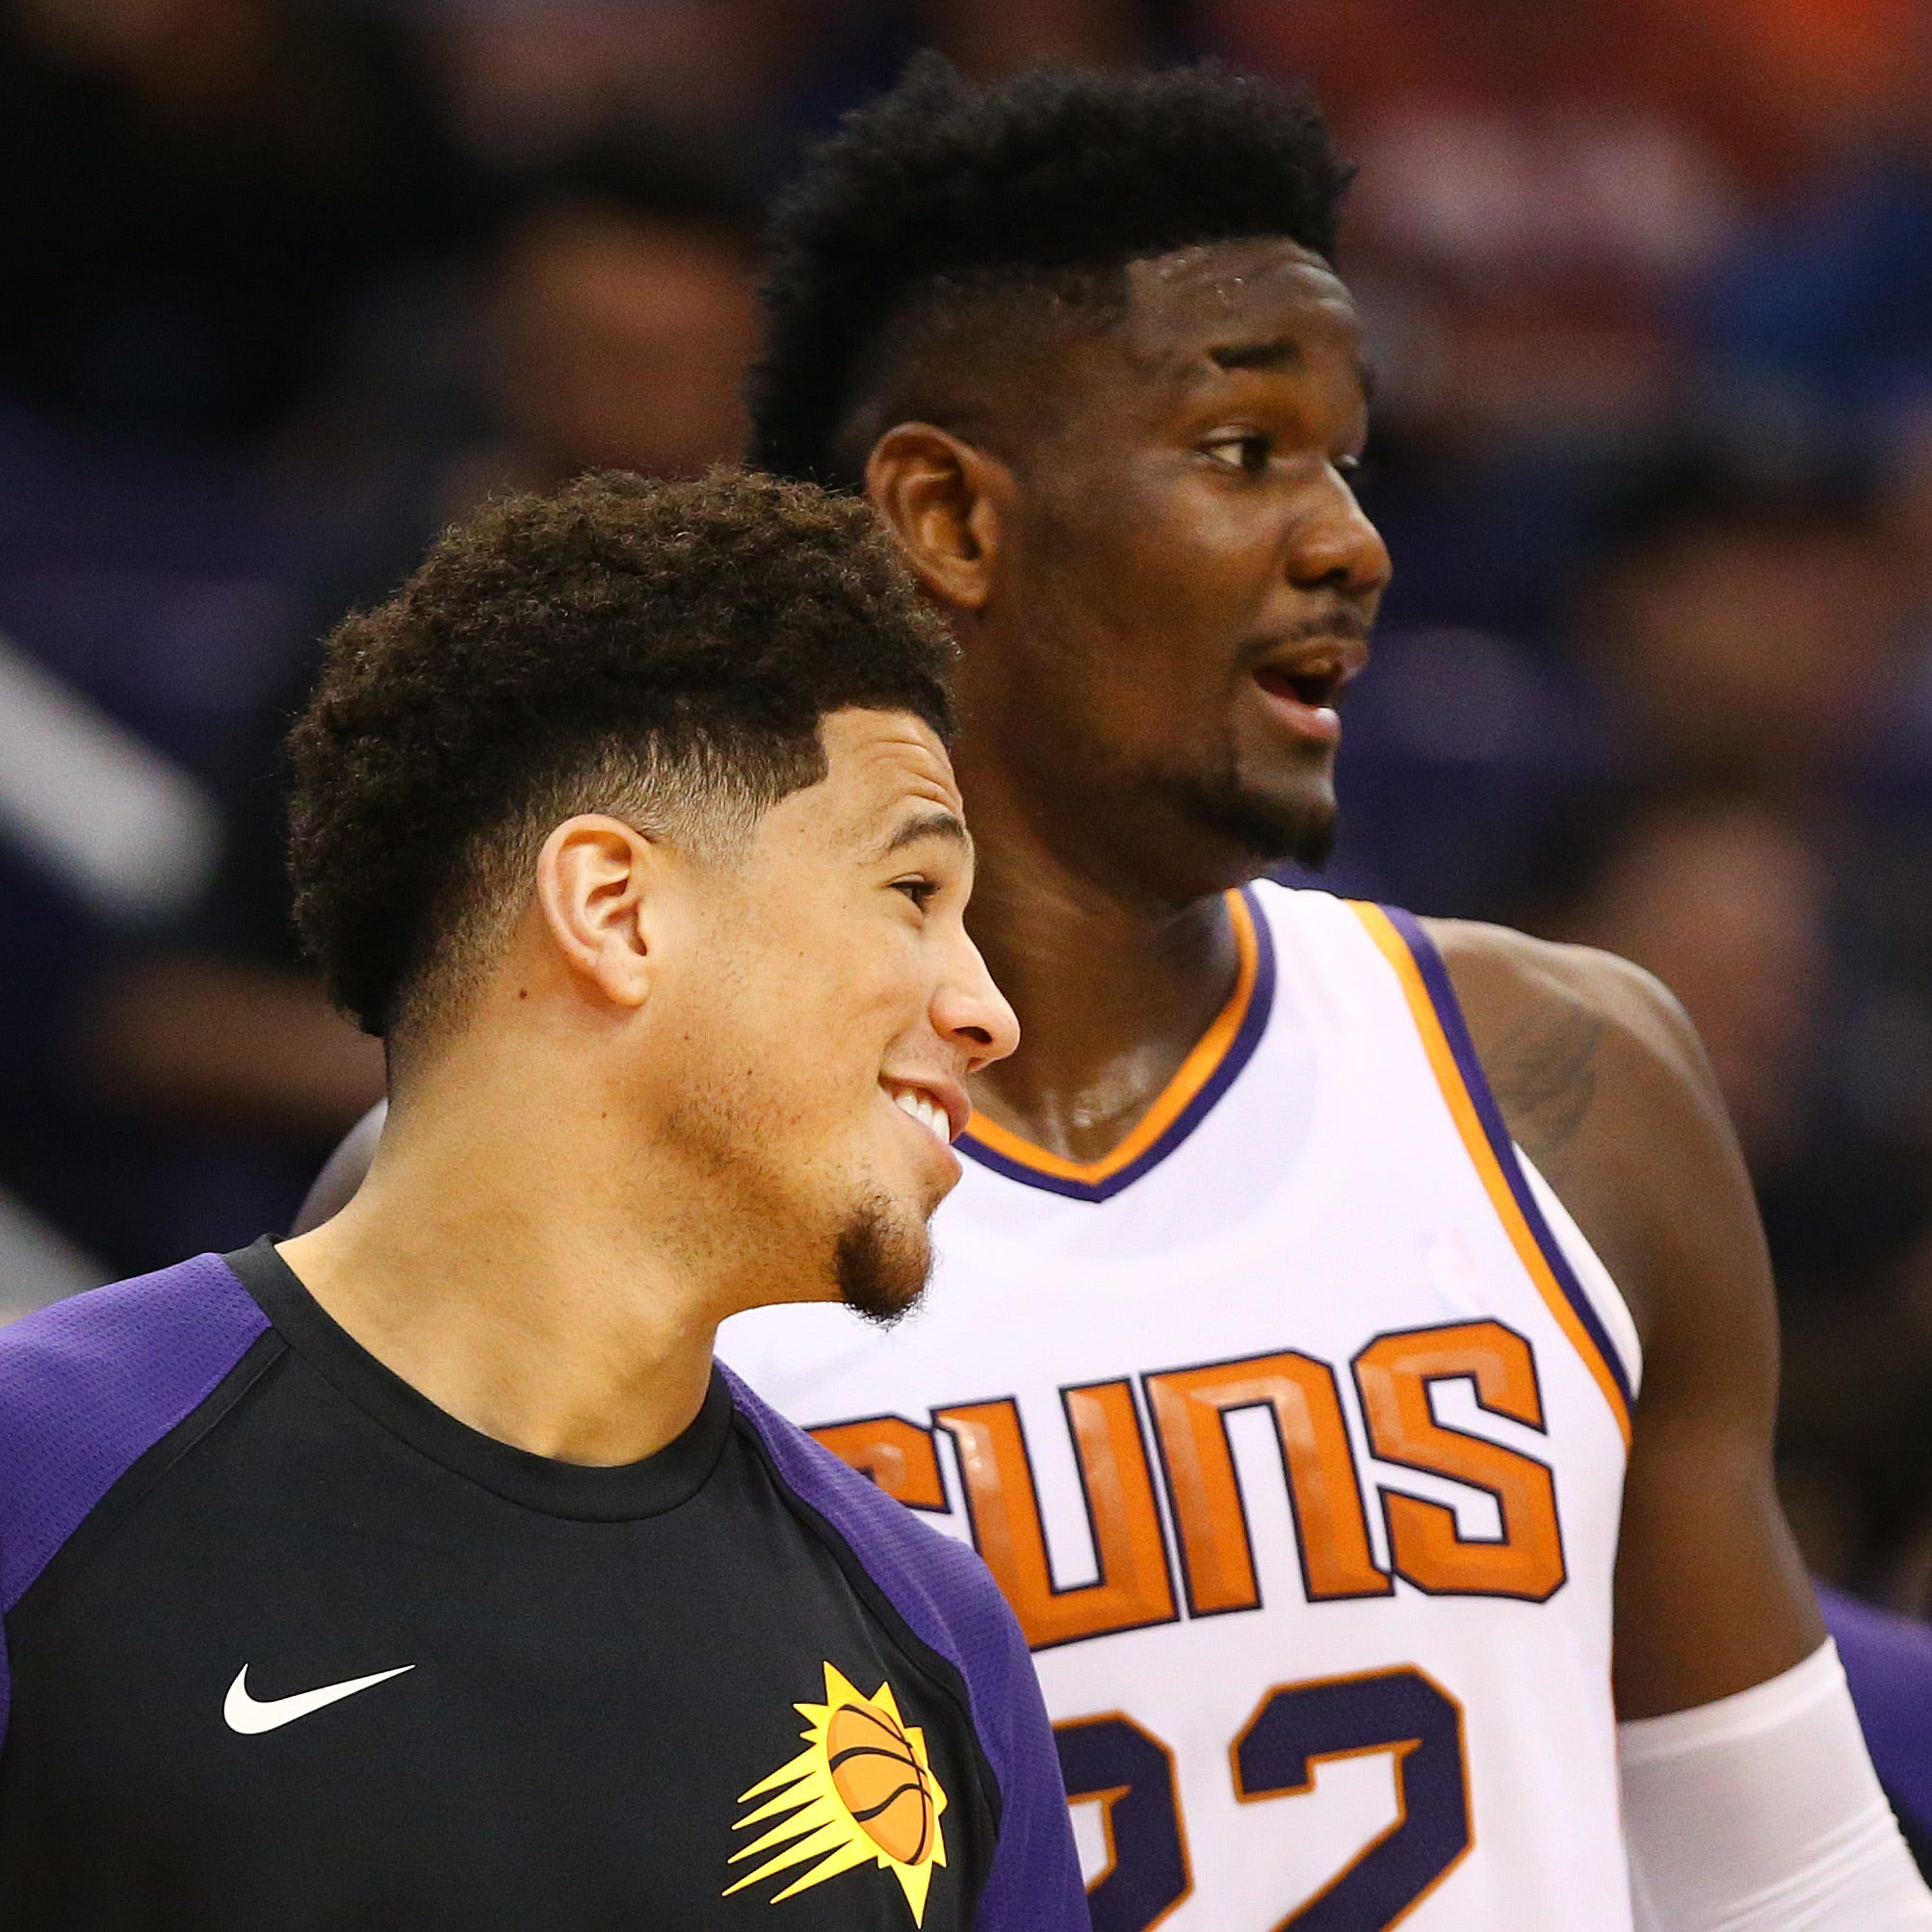 Devin Booker wants Phoenix Suns rookie Deandre Ayton to start his 'legacy' right